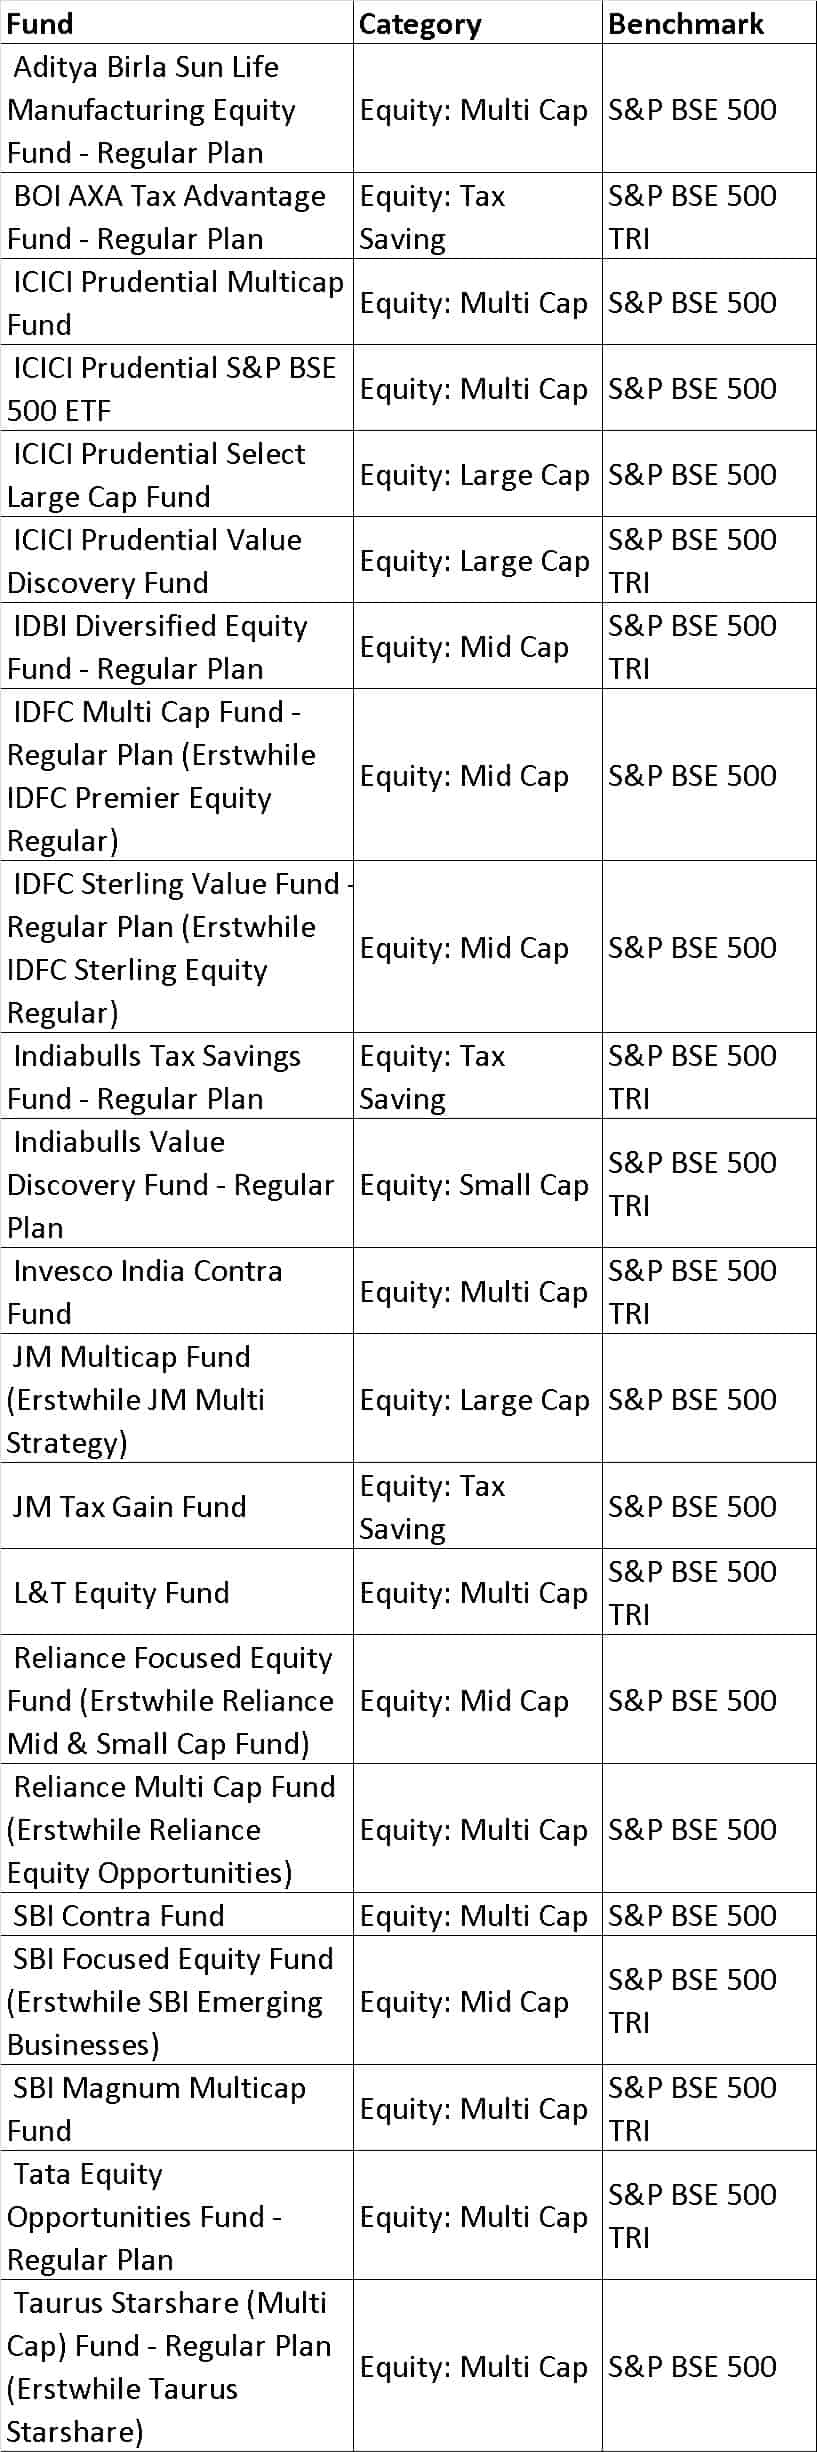 BSE 500 - List of mutual fund benchmarks (2018) with funds sorted by benchmark